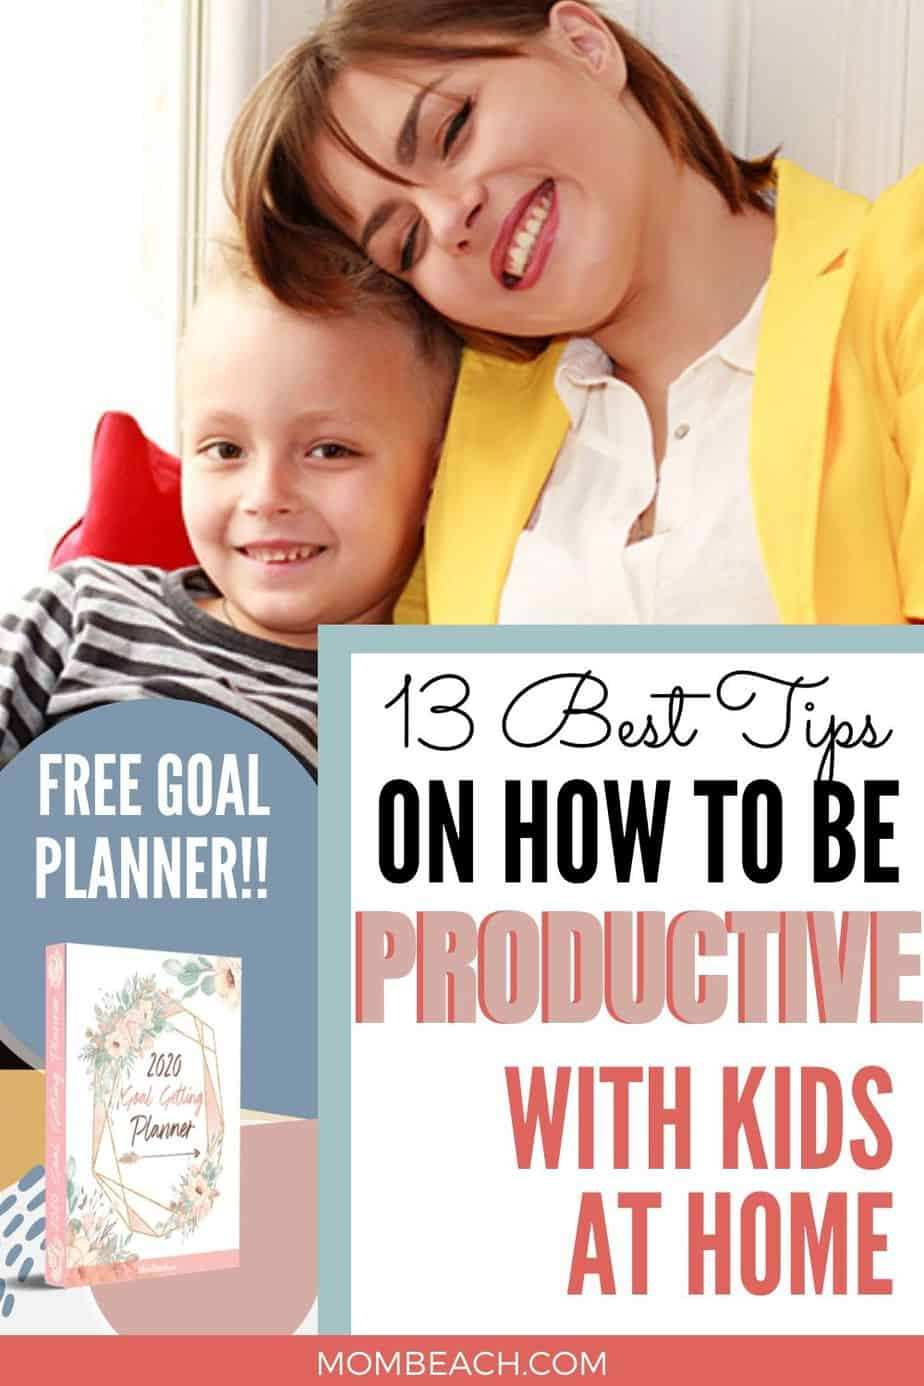 It can be hard to stay productive as a stay at home mom who works. There are several things to do to stay productive. We explore 13 productivity tips to boost your day routine. There are several things to do at home to stay productive. Included is a free goal planner to help you be more productive. #productivitytips #howtobeproductive #howtobeproductivestayathomemom